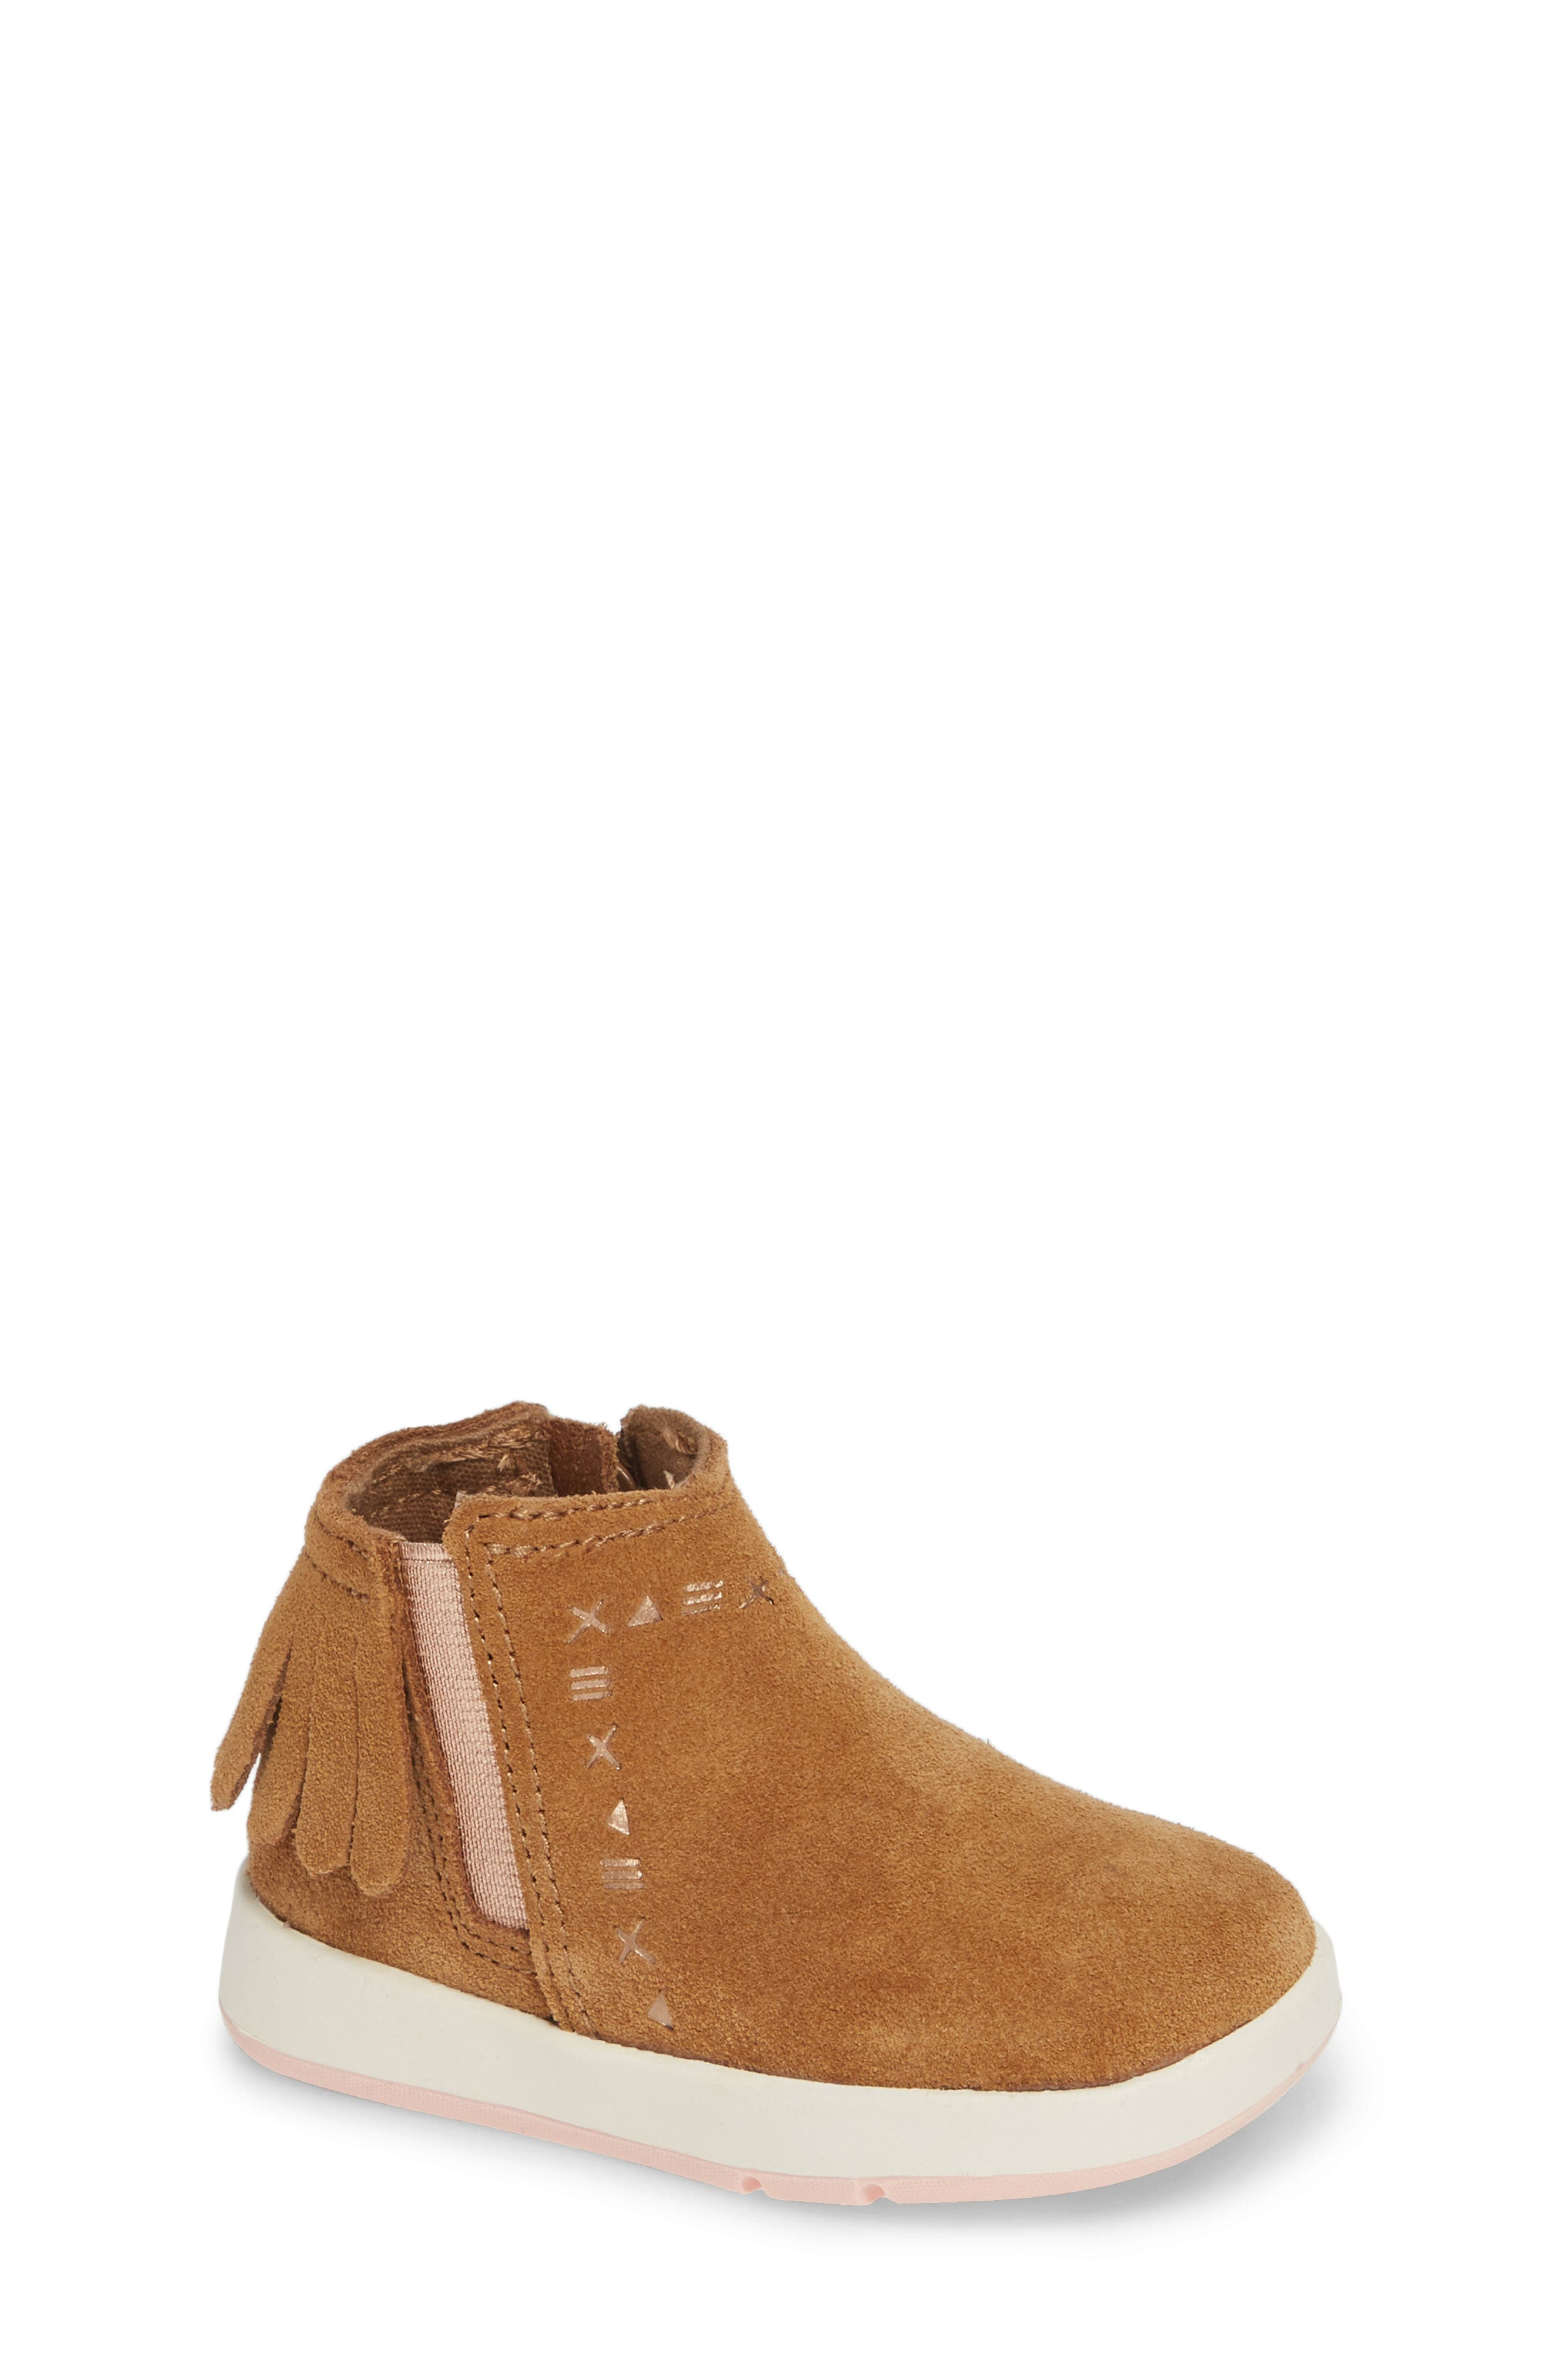 Lily Boot,                         Main,                         color, 200